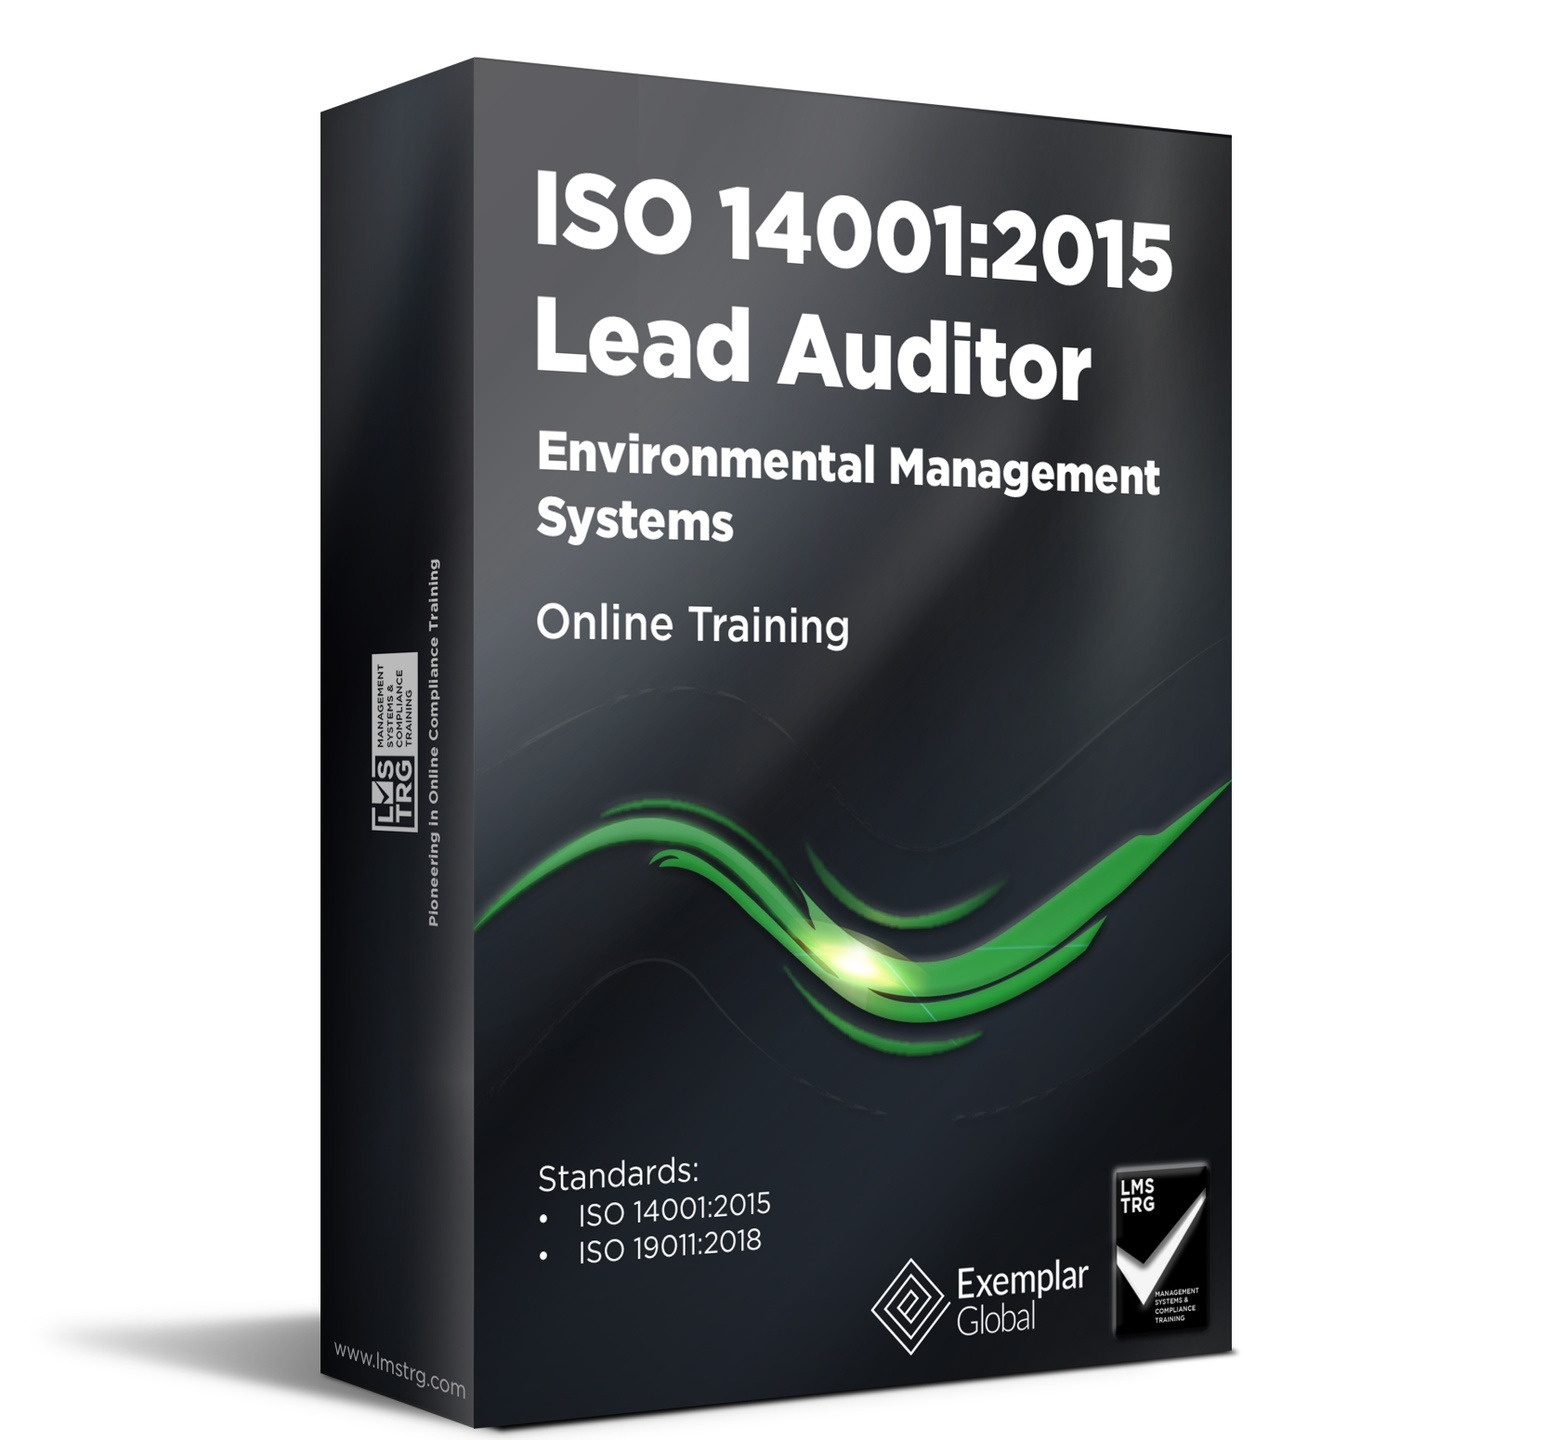 Environmental management systems lead auditor ISO 14001